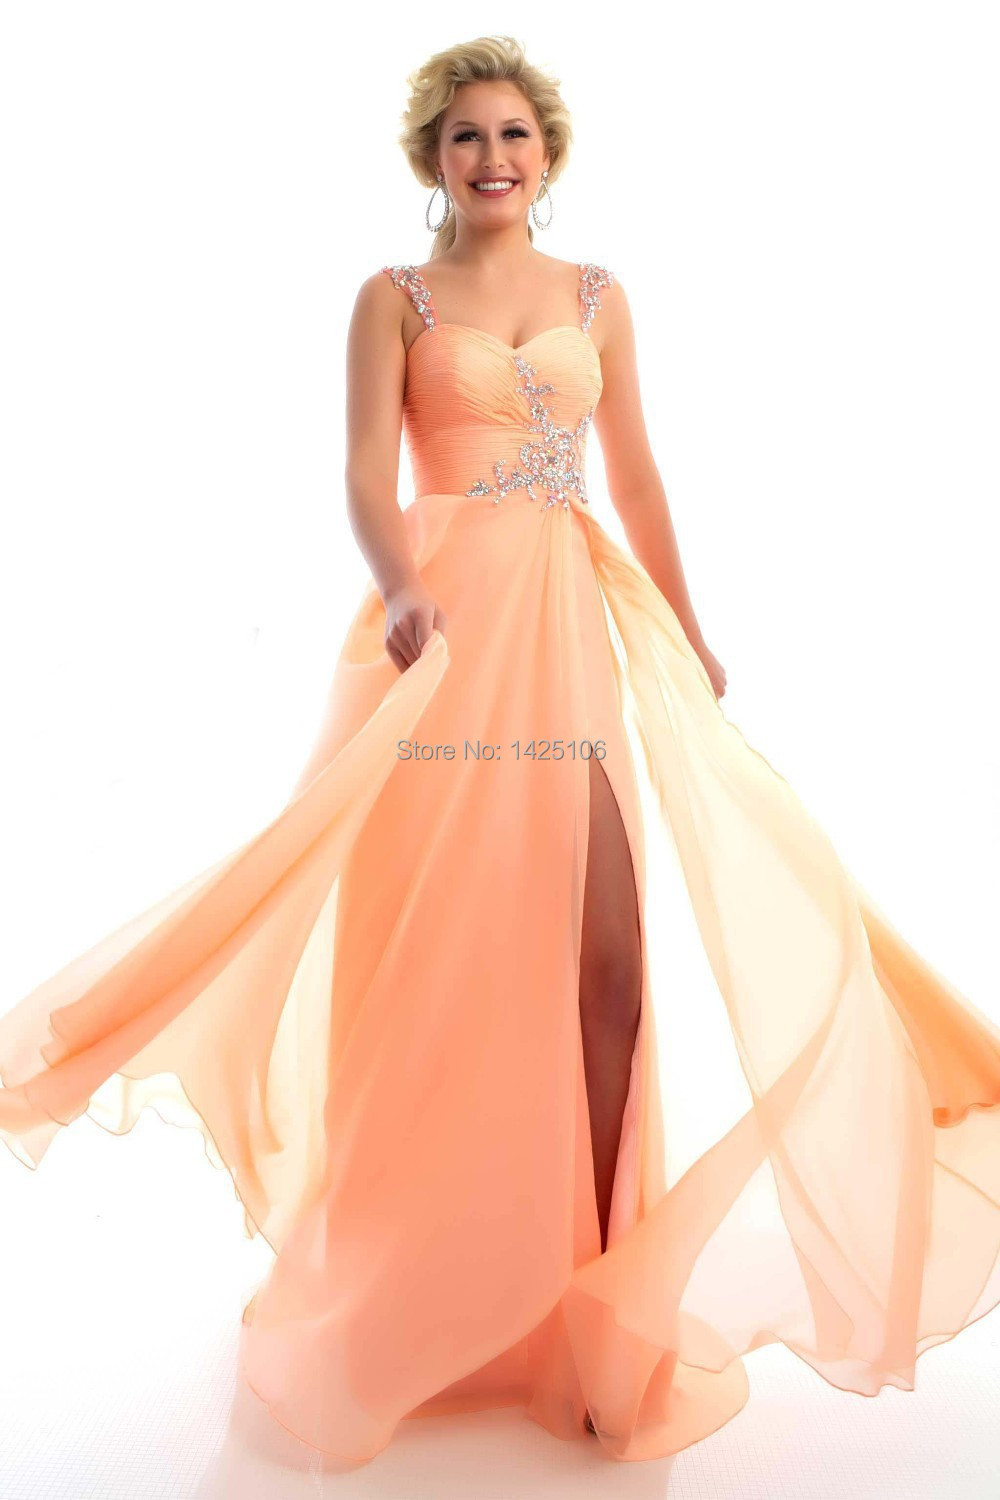 Cute Coral Colored Evening Gowns Photos Images For Wedding Gown